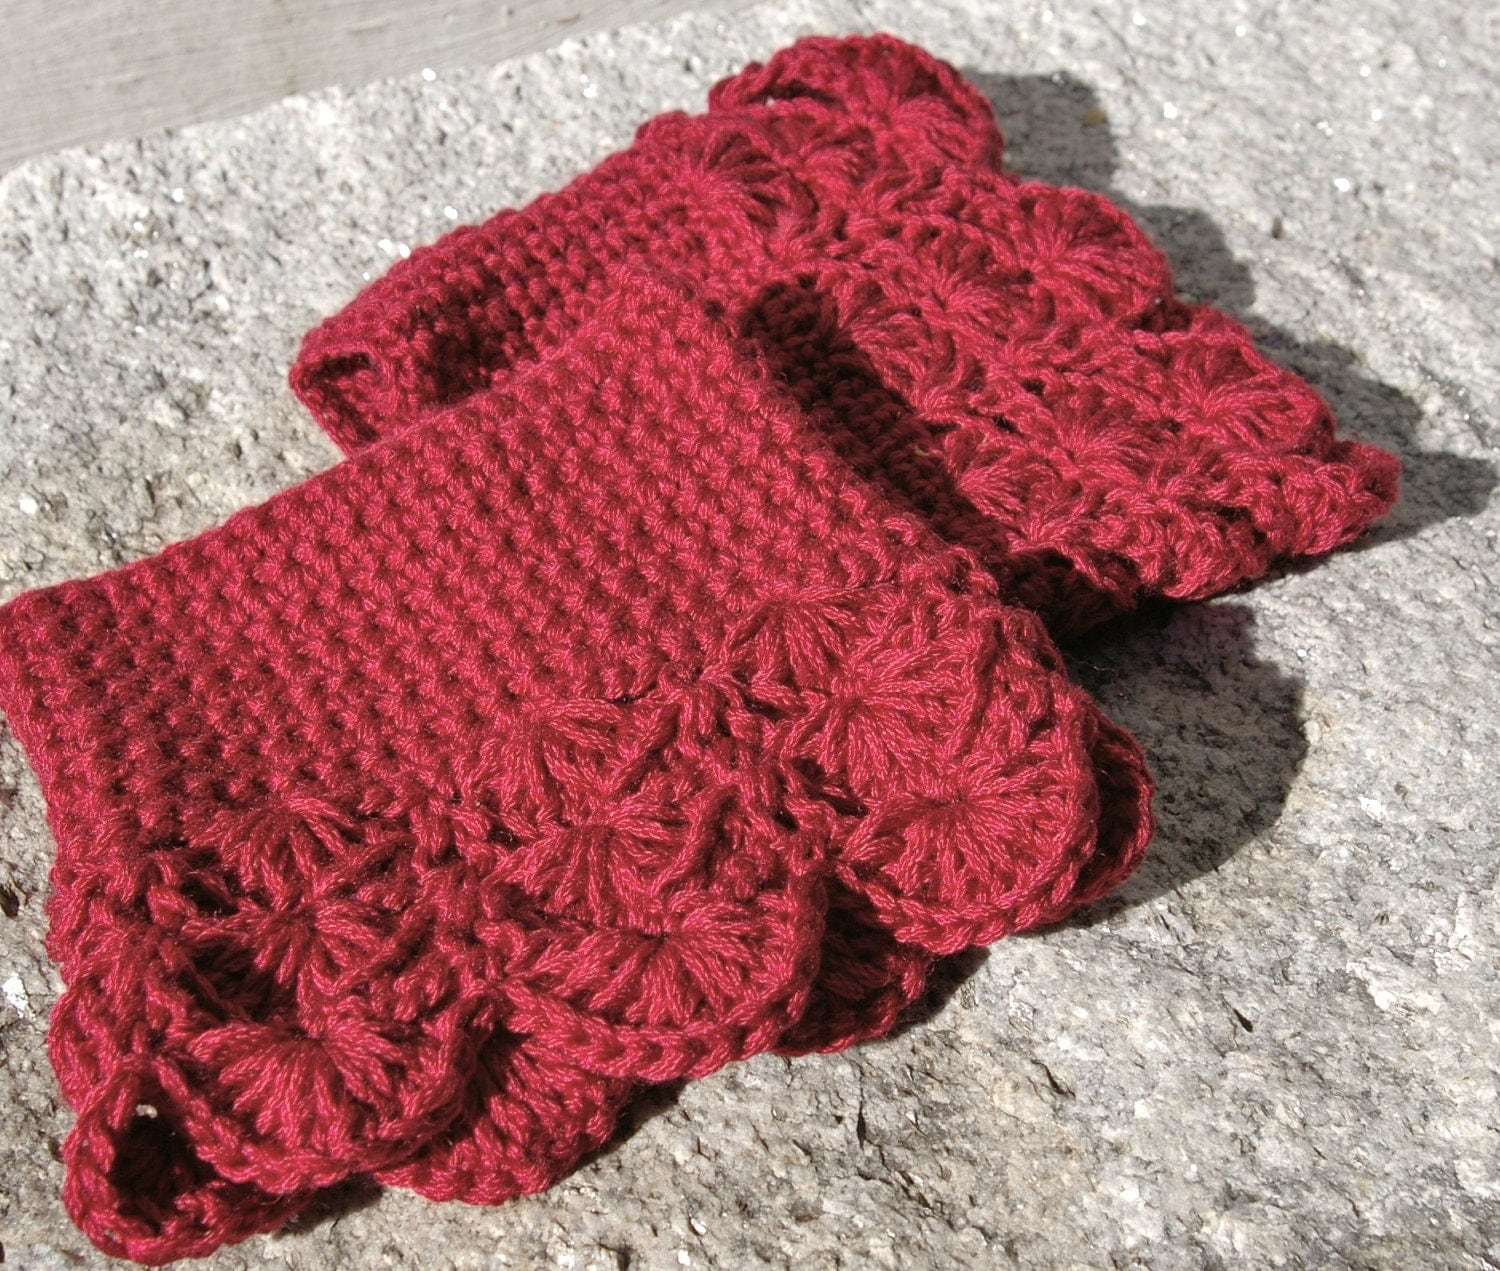 Crochet Boot Cuffs With Lace Pattern : Crochet Boot Cuffs Lace Boot Cuffs Boot Toppers by ...